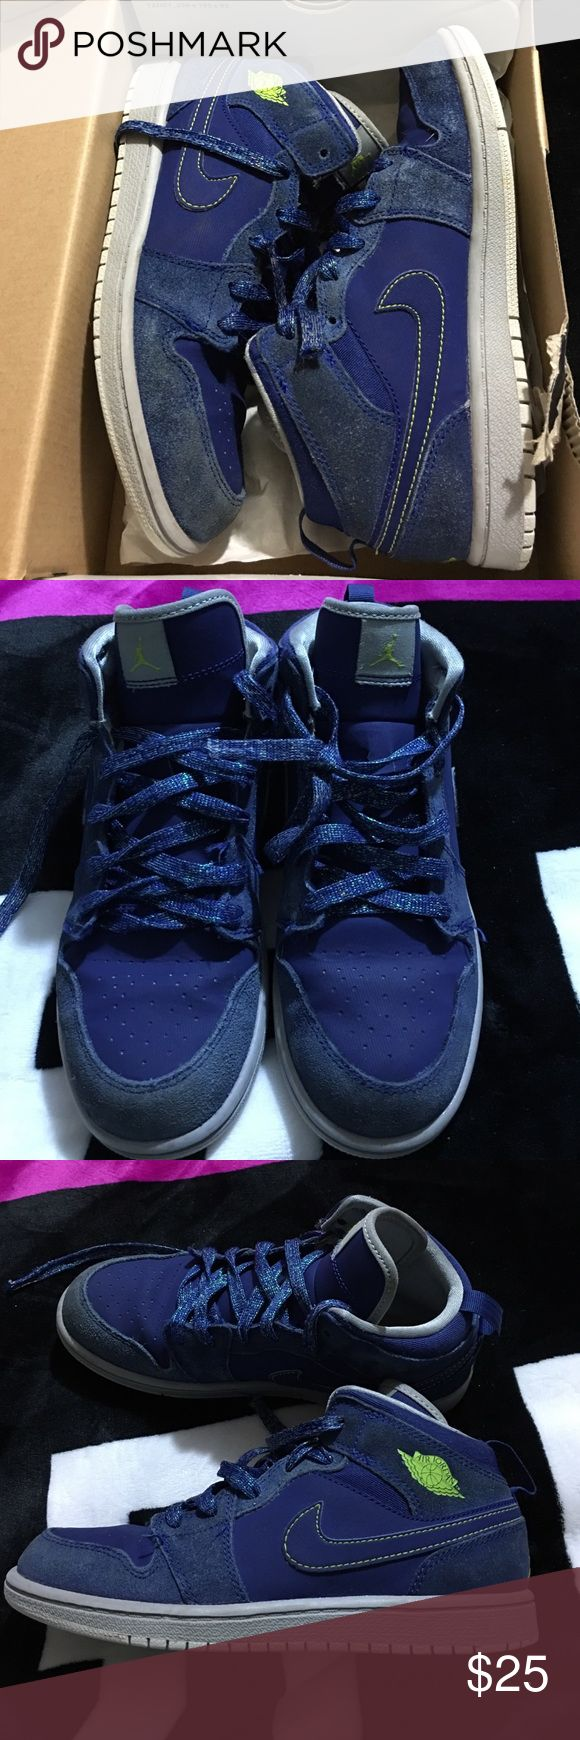 "Jordan Mid 1 Has some wear but lots of life left ""PLEASE DON'T ASK WHATS MY LOWEST OR WOULD I TAKE $ANYLESS$ USE THE OFFER BUTTON  NO DISCUSSING PRICING OVER COMMENTS"" ️ #NO HOLDS #BUNDLE SAVE ON SHIPPING  #NO LOW BALLS  #IF ITS LISTED ITS AVAILABLE  #NO RUDE COMMENTS=BLOCK   Items comes from a smoking home meaning possibly may smell like smoke but items are stored away, NO PETS  I ship same day or next business day any questions don't hesitate to ask  Thanks for looking Jordan Shoes…"